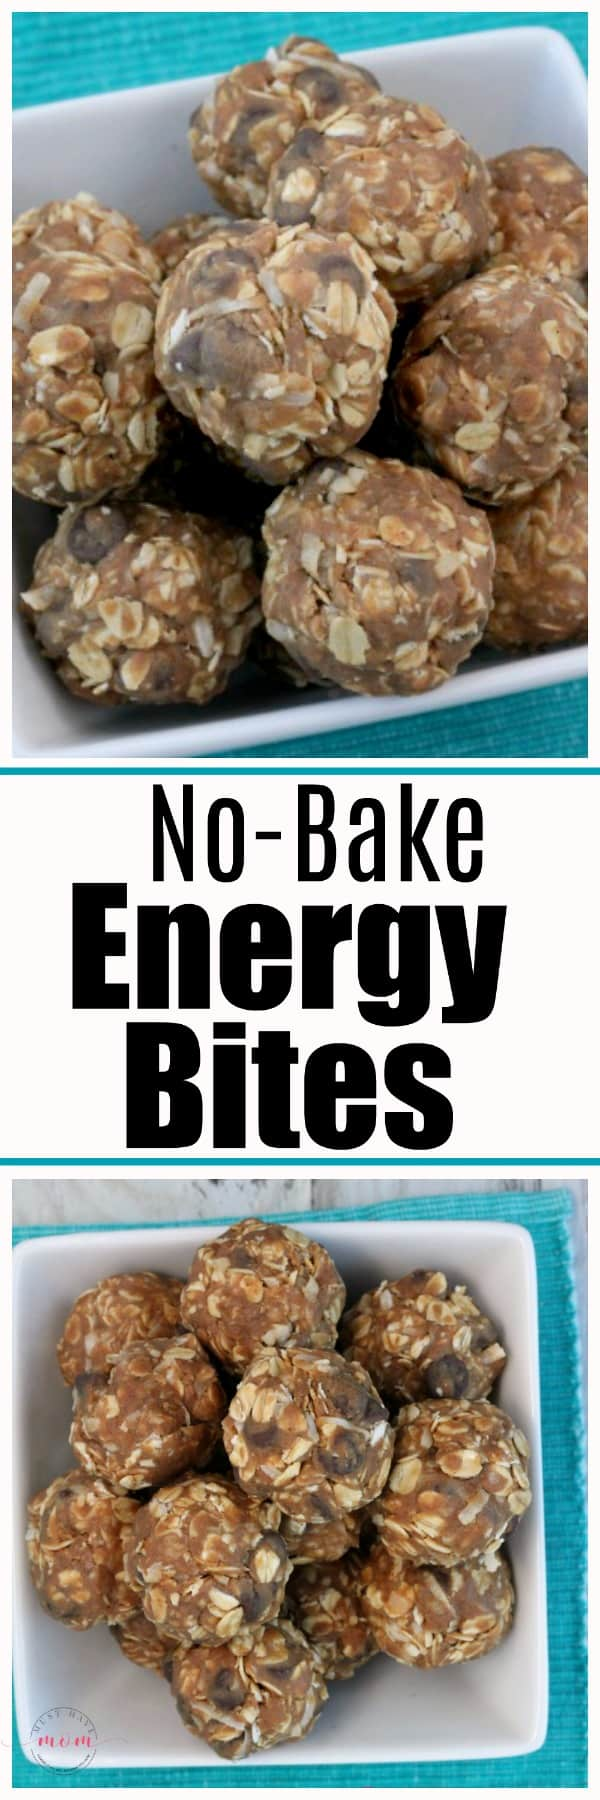 Quick and easy no bake energy bites recipe for grab and go breakfast or healthy snack. Pin for meal prep ideas!